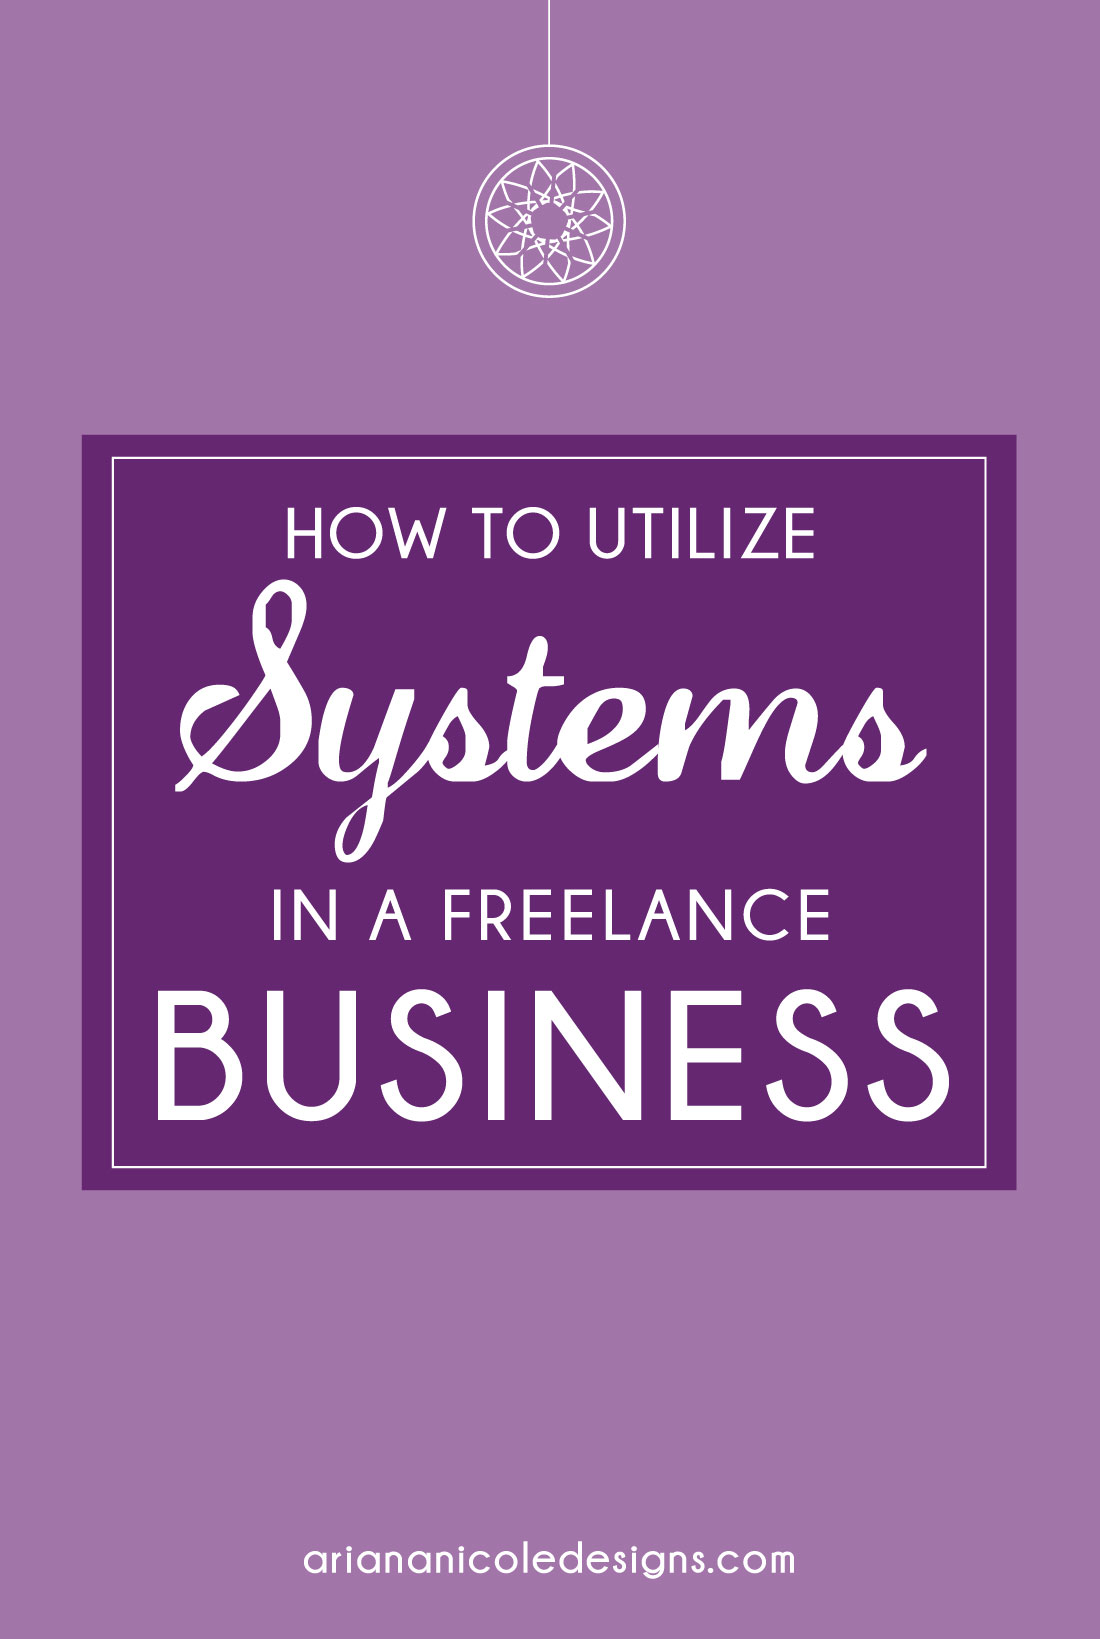 How_To_Utilize_Systems_In_A_Freelance_Business-1100